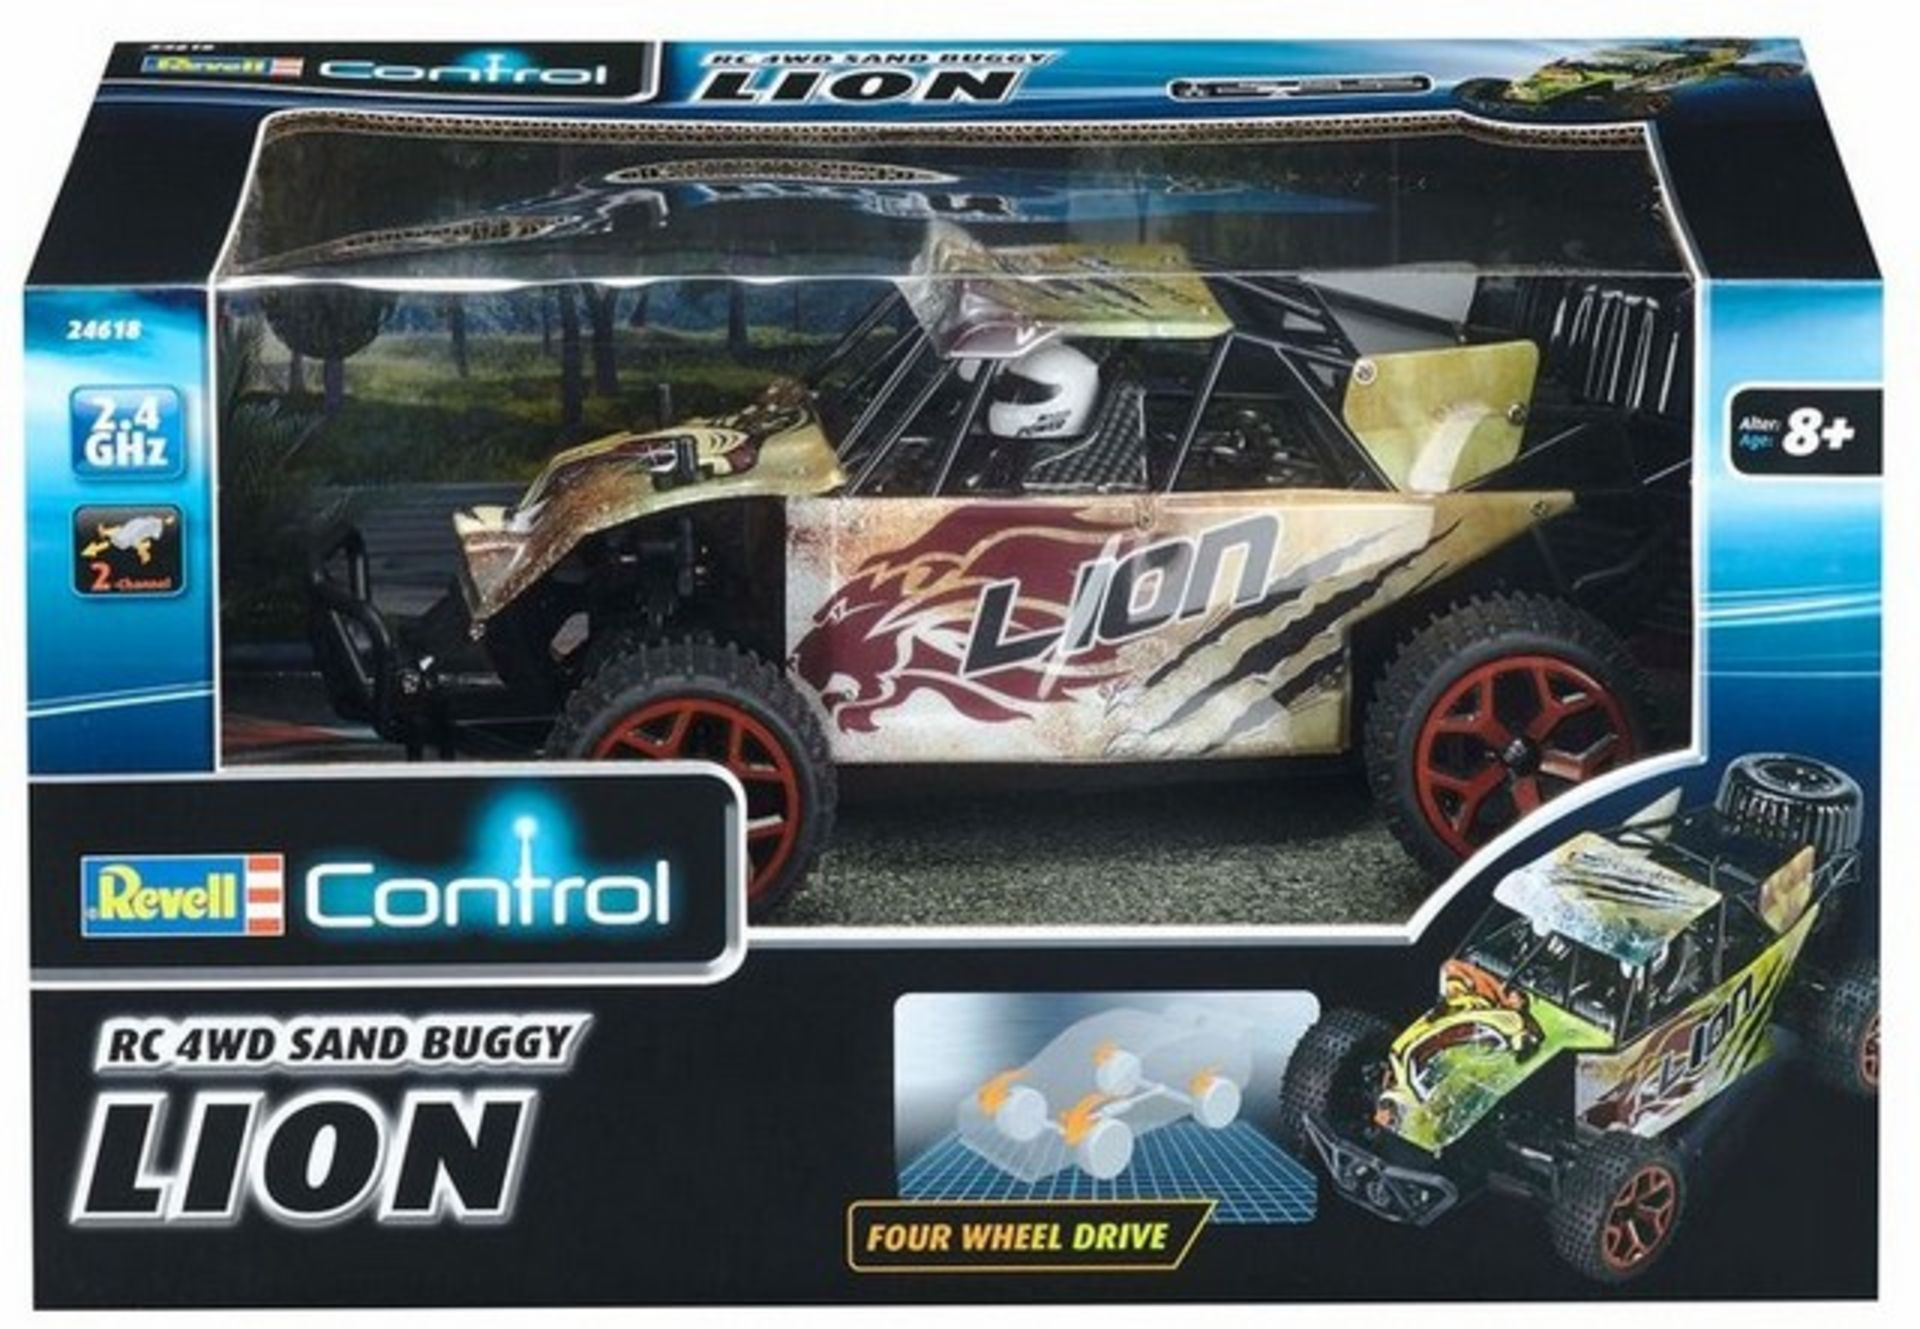 Lot 12411 - V Brand New Revell R/C 4 Wheel Drive Sand Buggy Lion Up To 15 kph 2.4GHz 2 Channel Remote Control